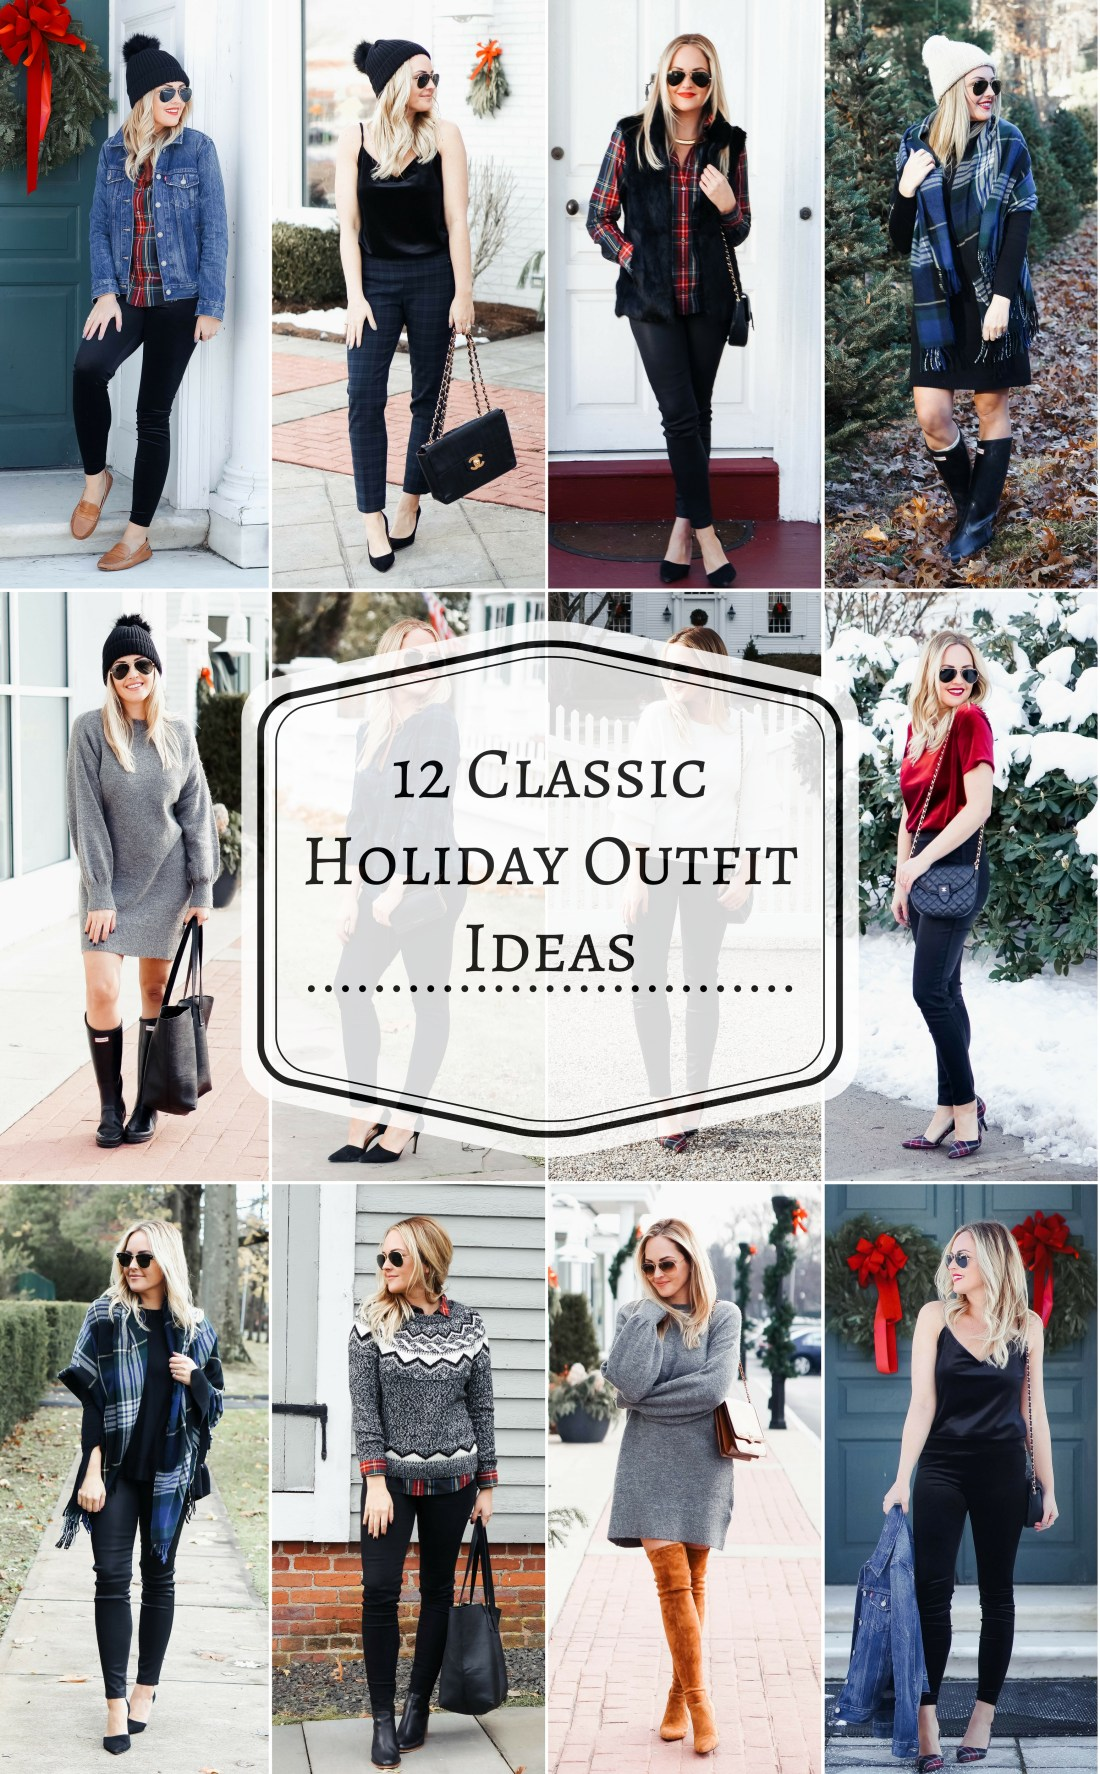 Classic Holiday Outfit Ideas